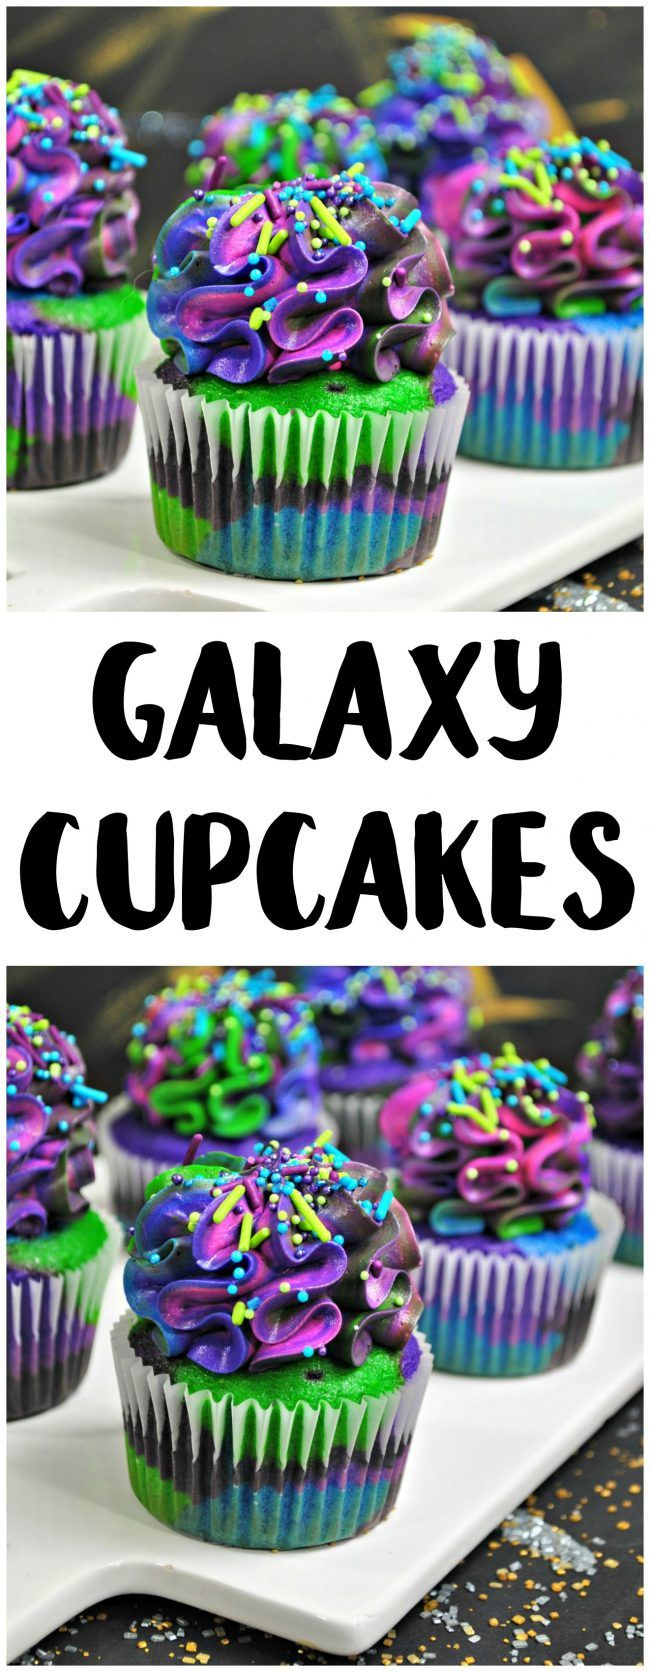 Solo: A Star Wars Story Galaxy Cupcakes Recipe!